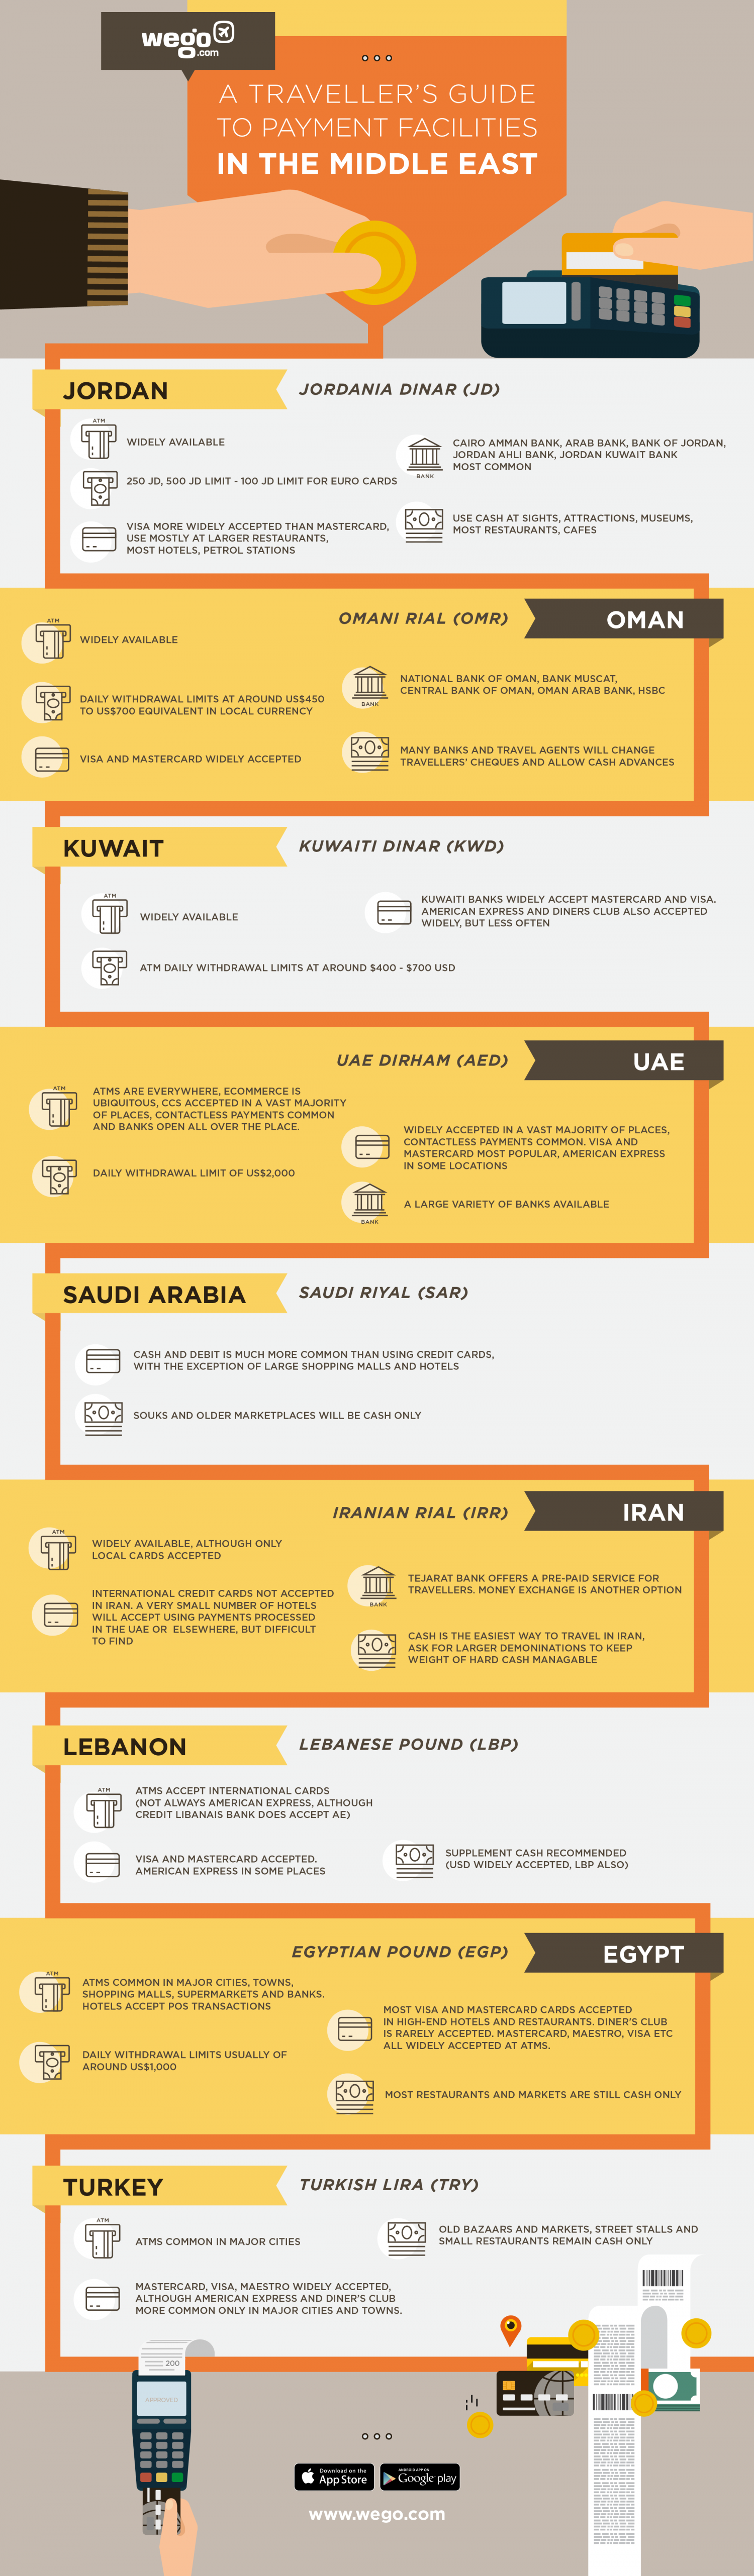 Cash or credit? Payment guide for travellers to the Middle East Infographic